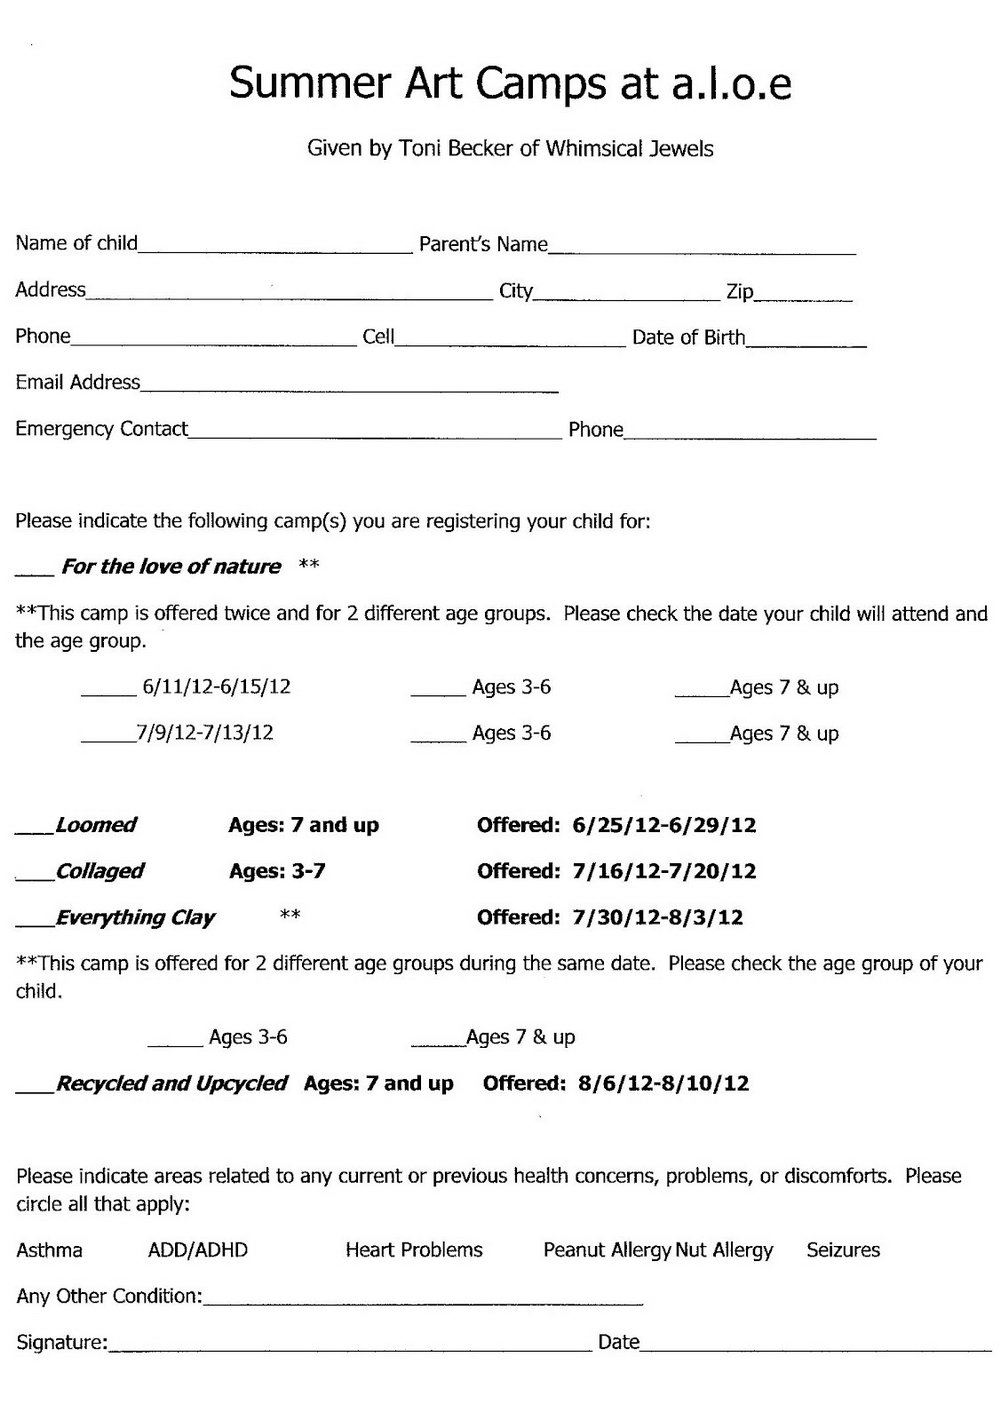 Summer Camp Registration Form Templates